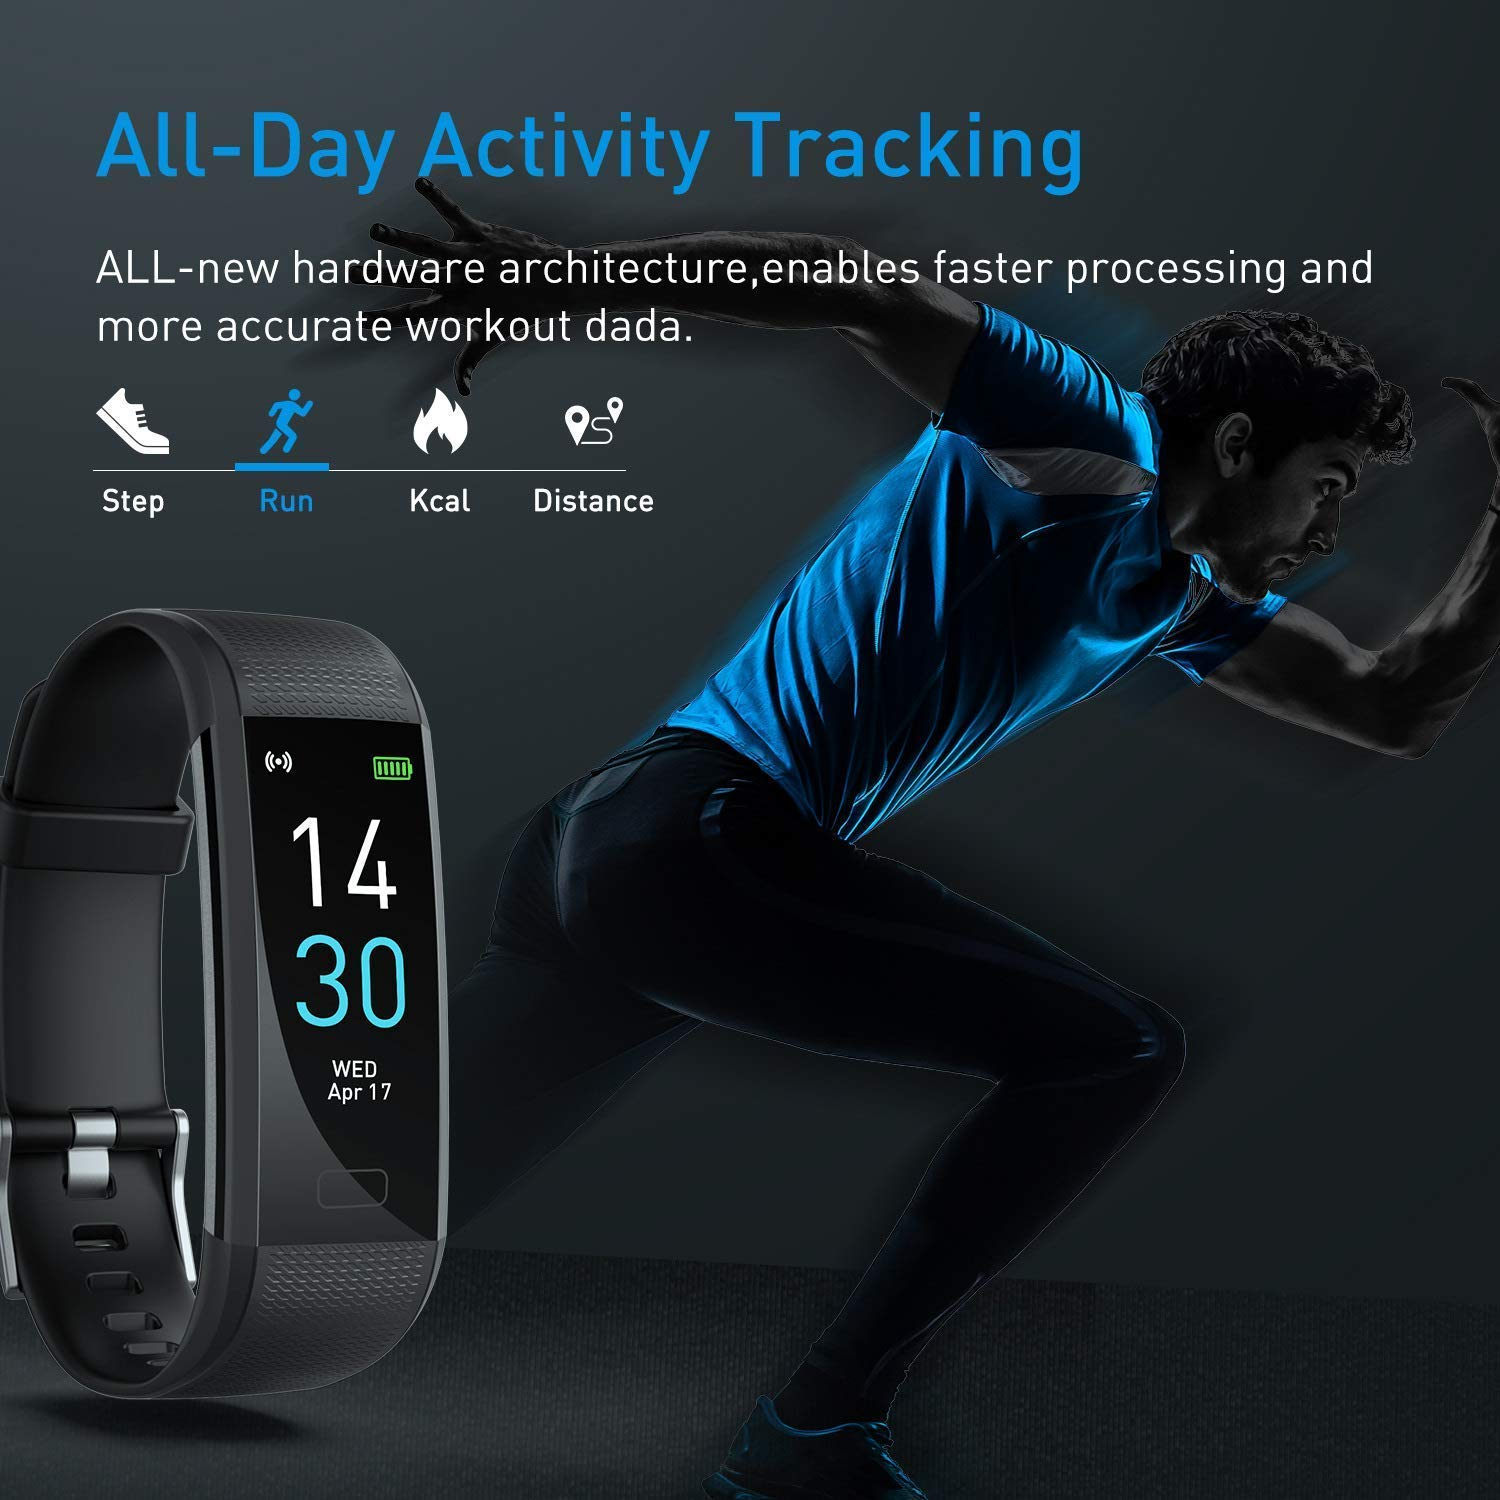 Fitness Tracker HR, Activity Tracker Watch with Heart Rate Monitor, IP68 Waterproof Smart Fitness Band with Step Counter, Calorie Counter, Pedometer Watch Black for Kids Women and Men